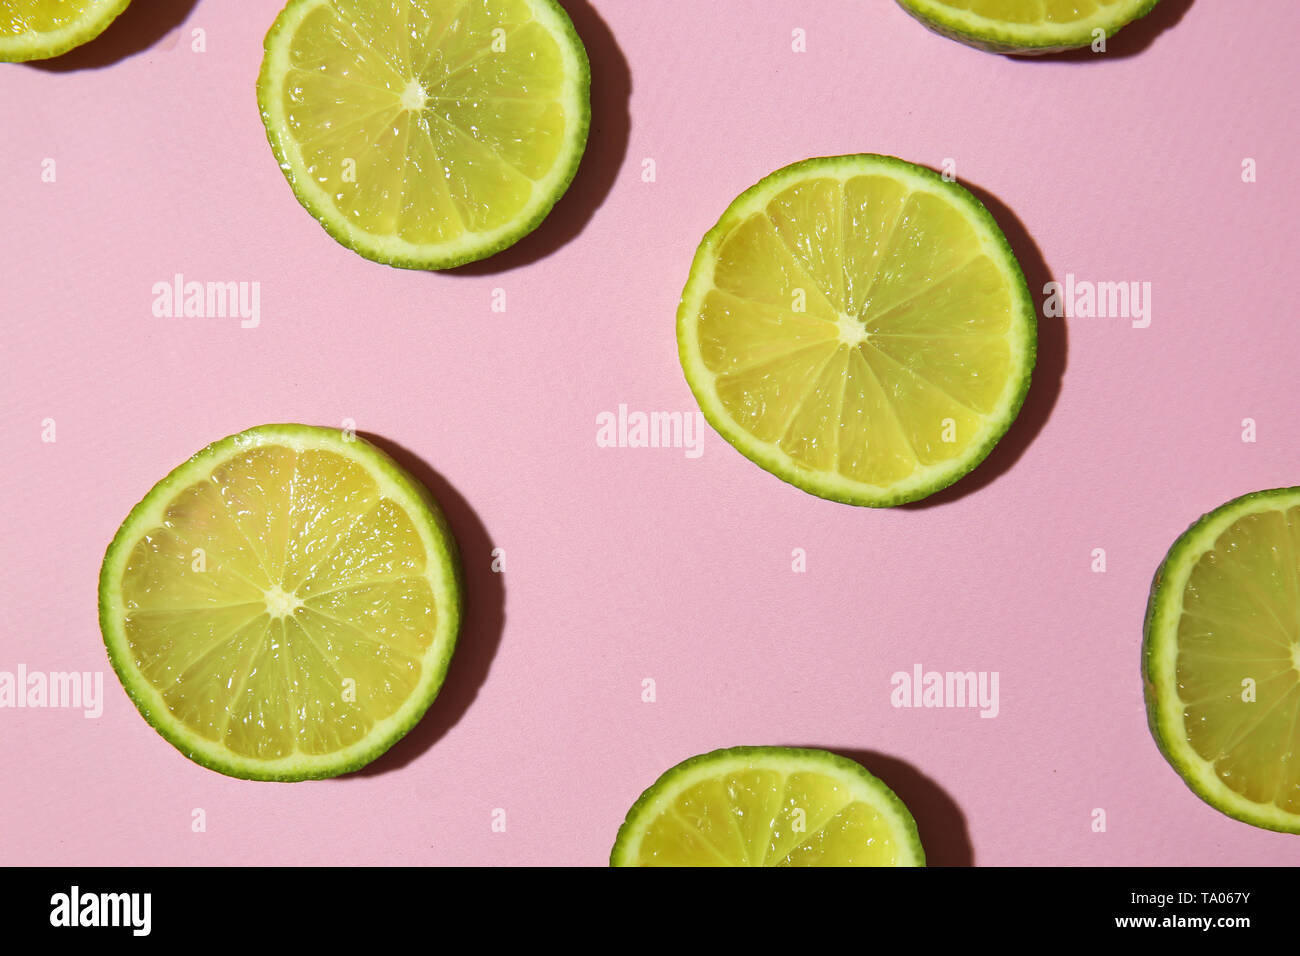 Many slices of lime on color background - Stock Image